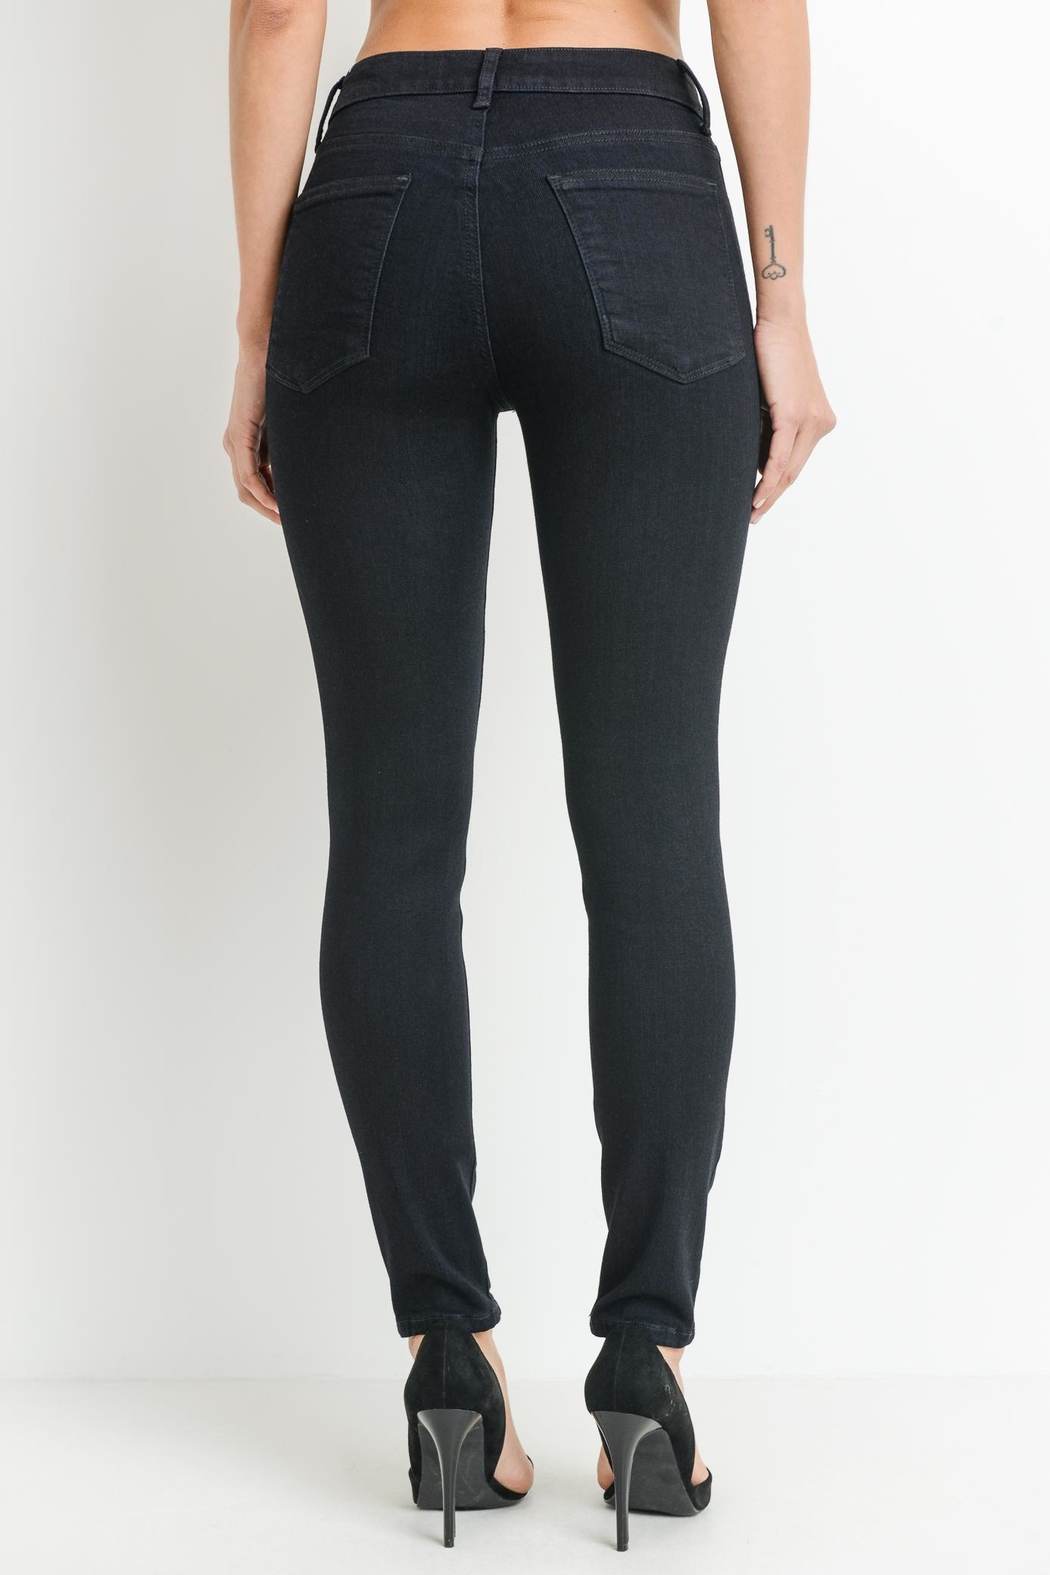 just black High Rise Jeans - Side Cropped Image